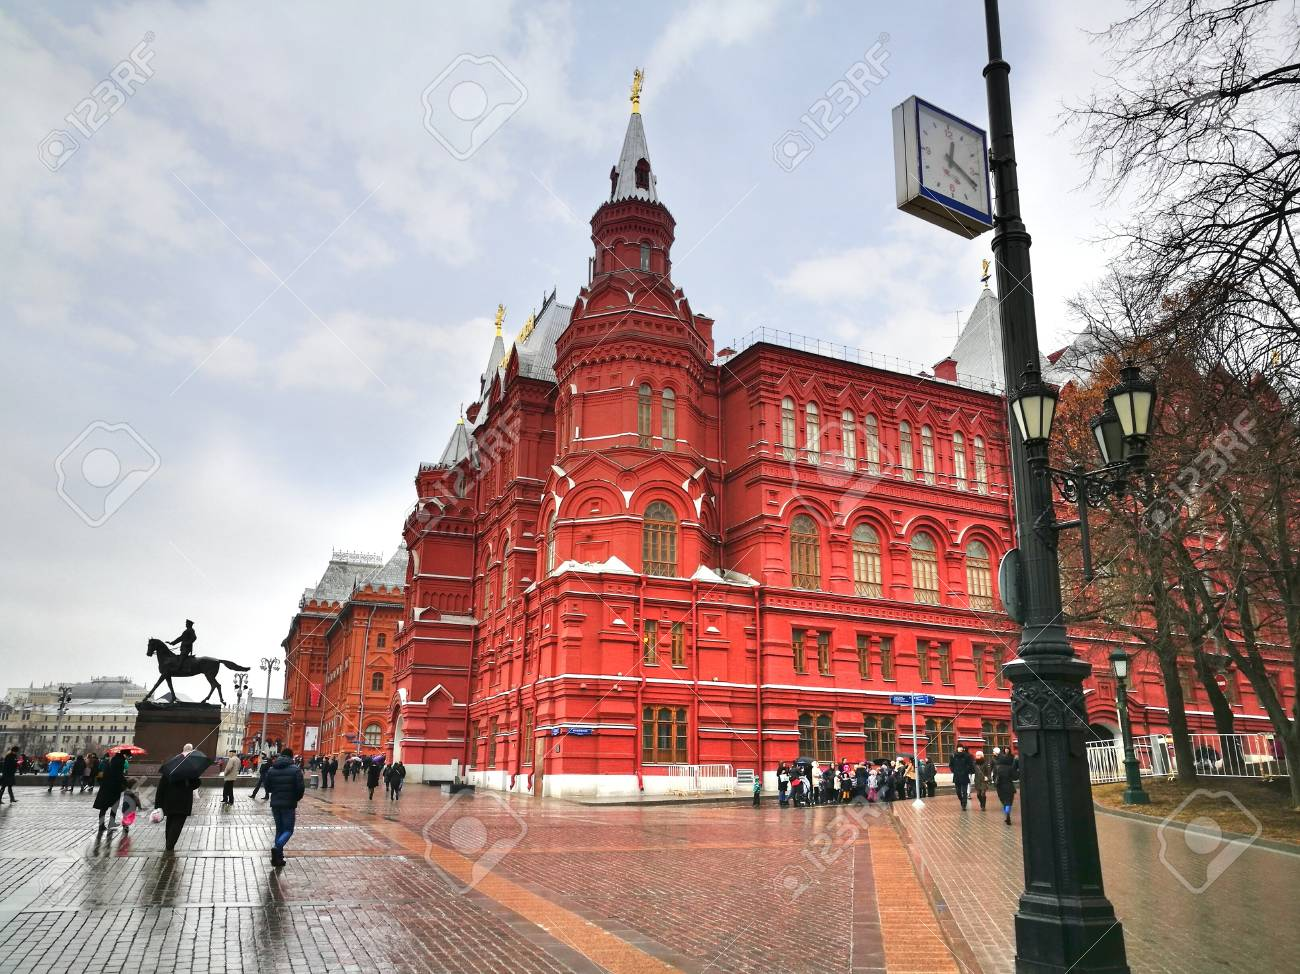 Founder of Moscow. Who is considered the founder of Moscow 1